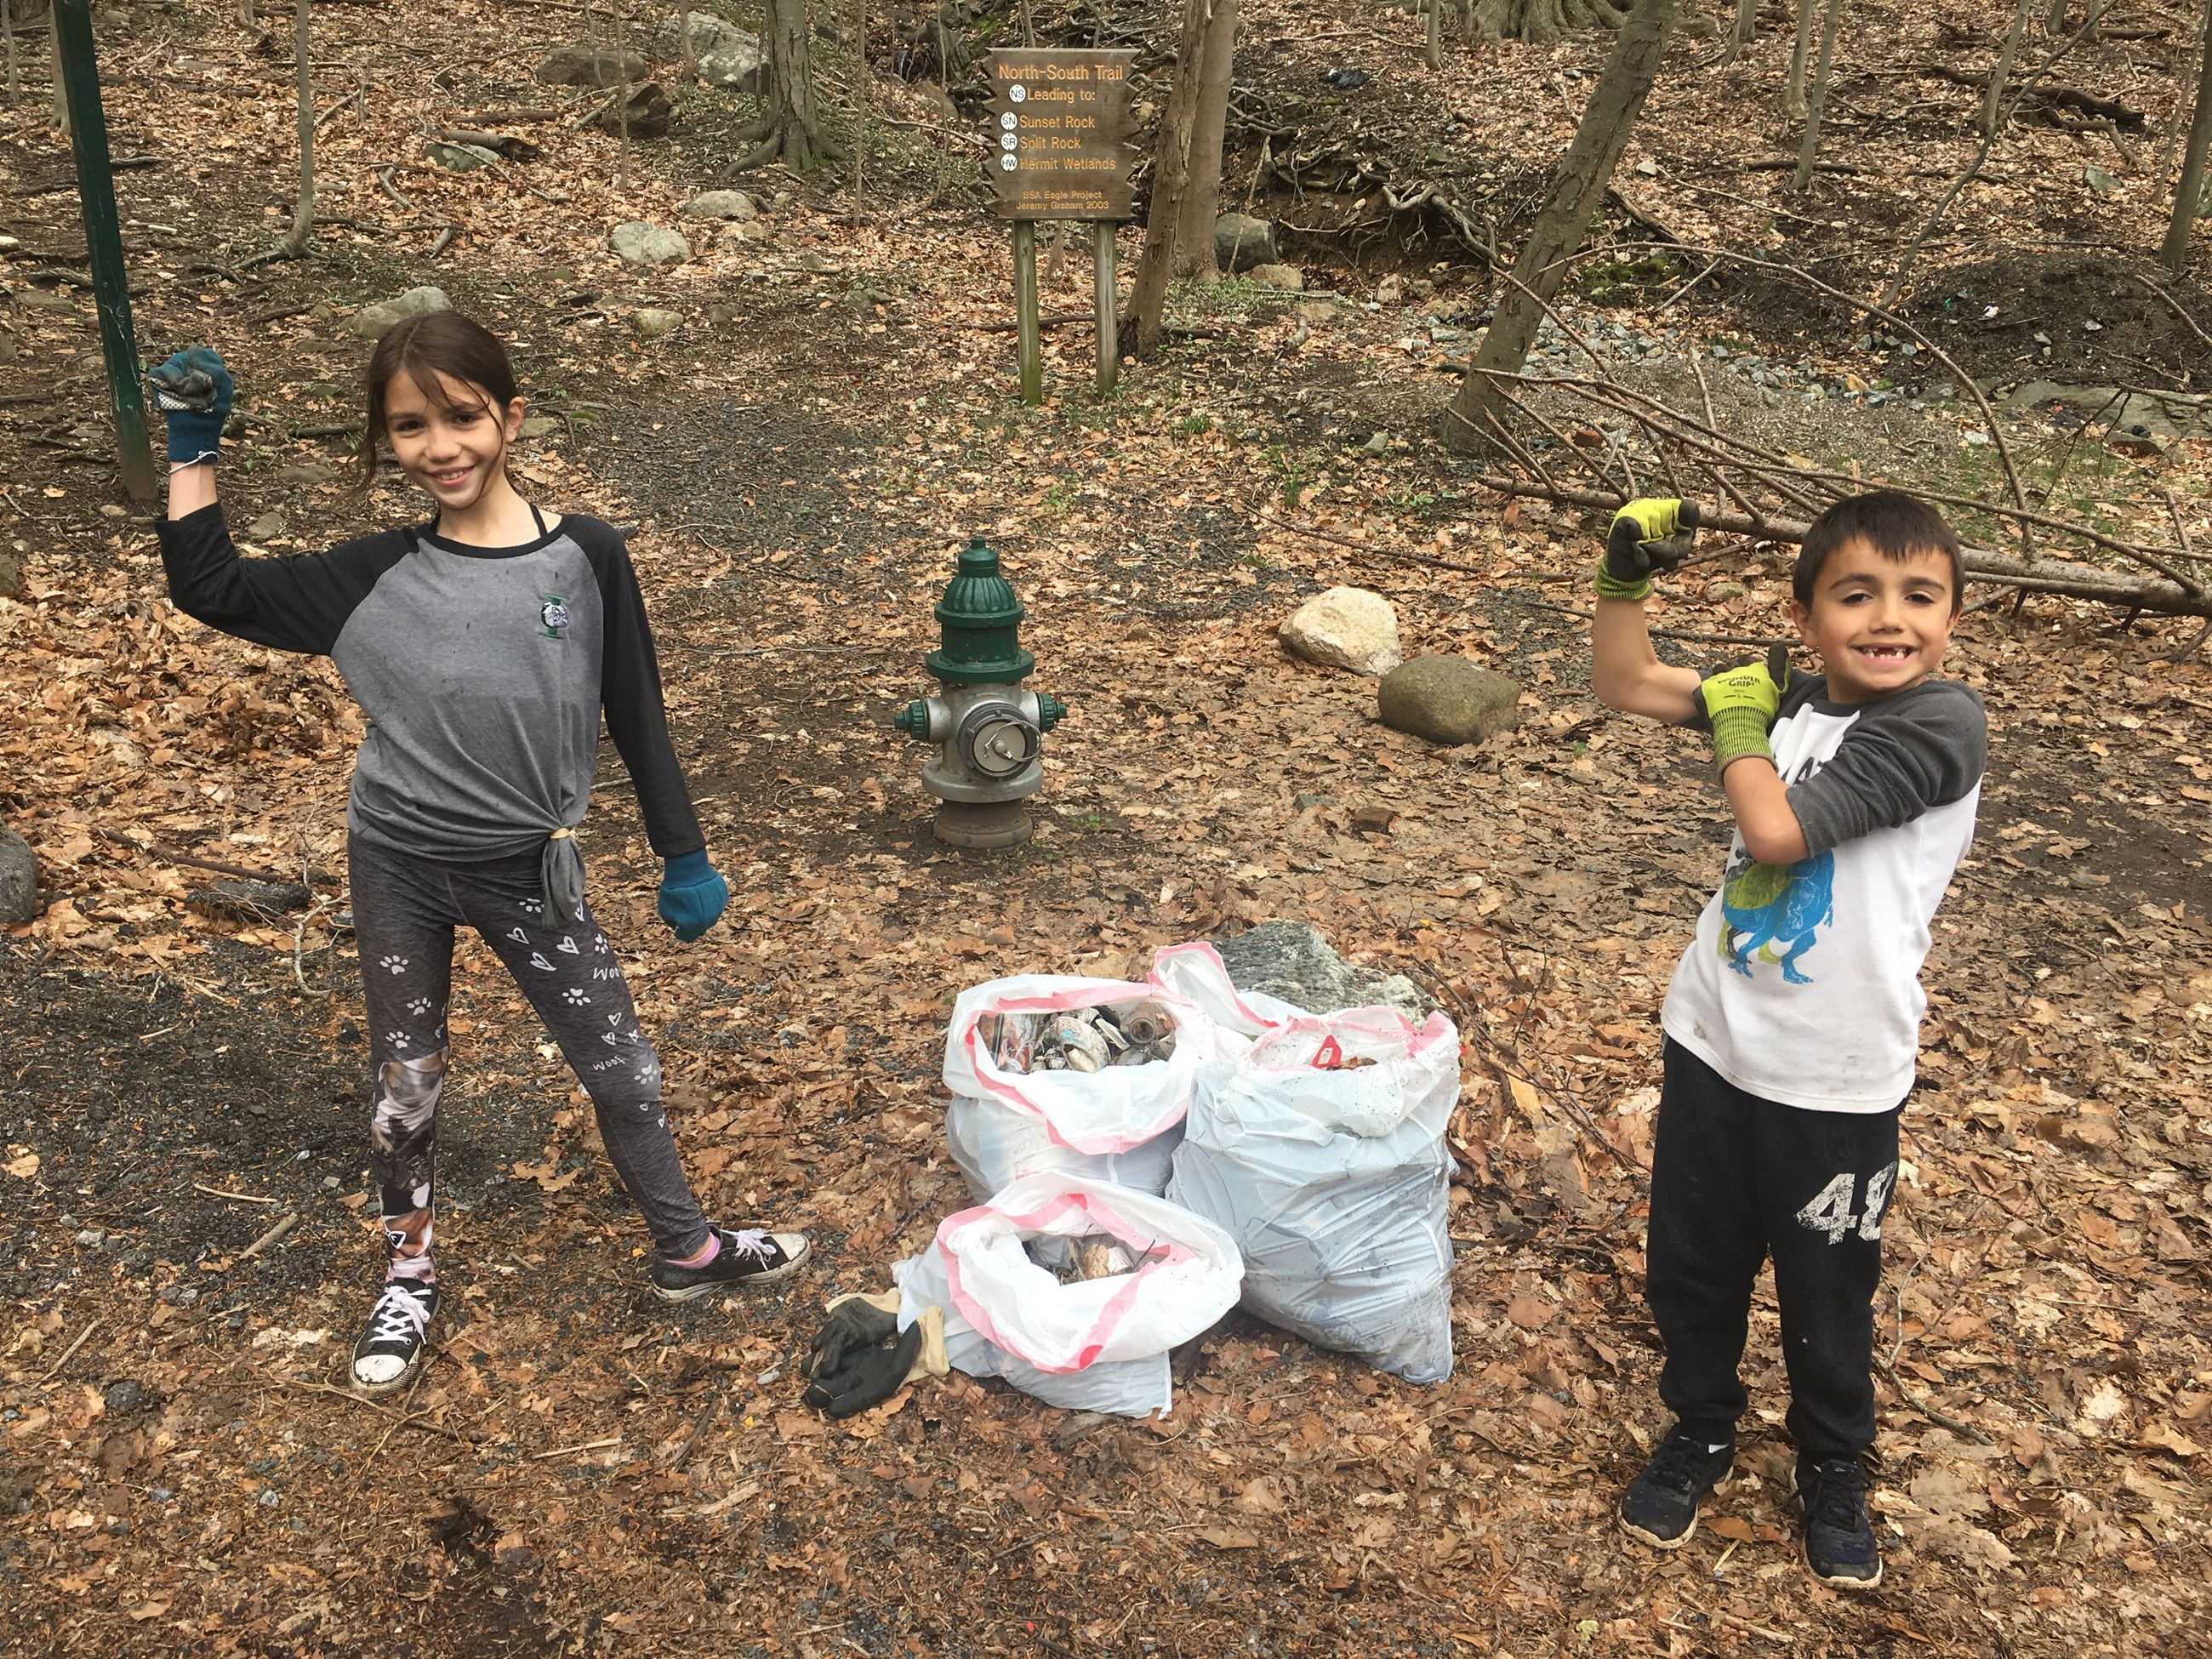 Earth Day cleanup at our reservoir!